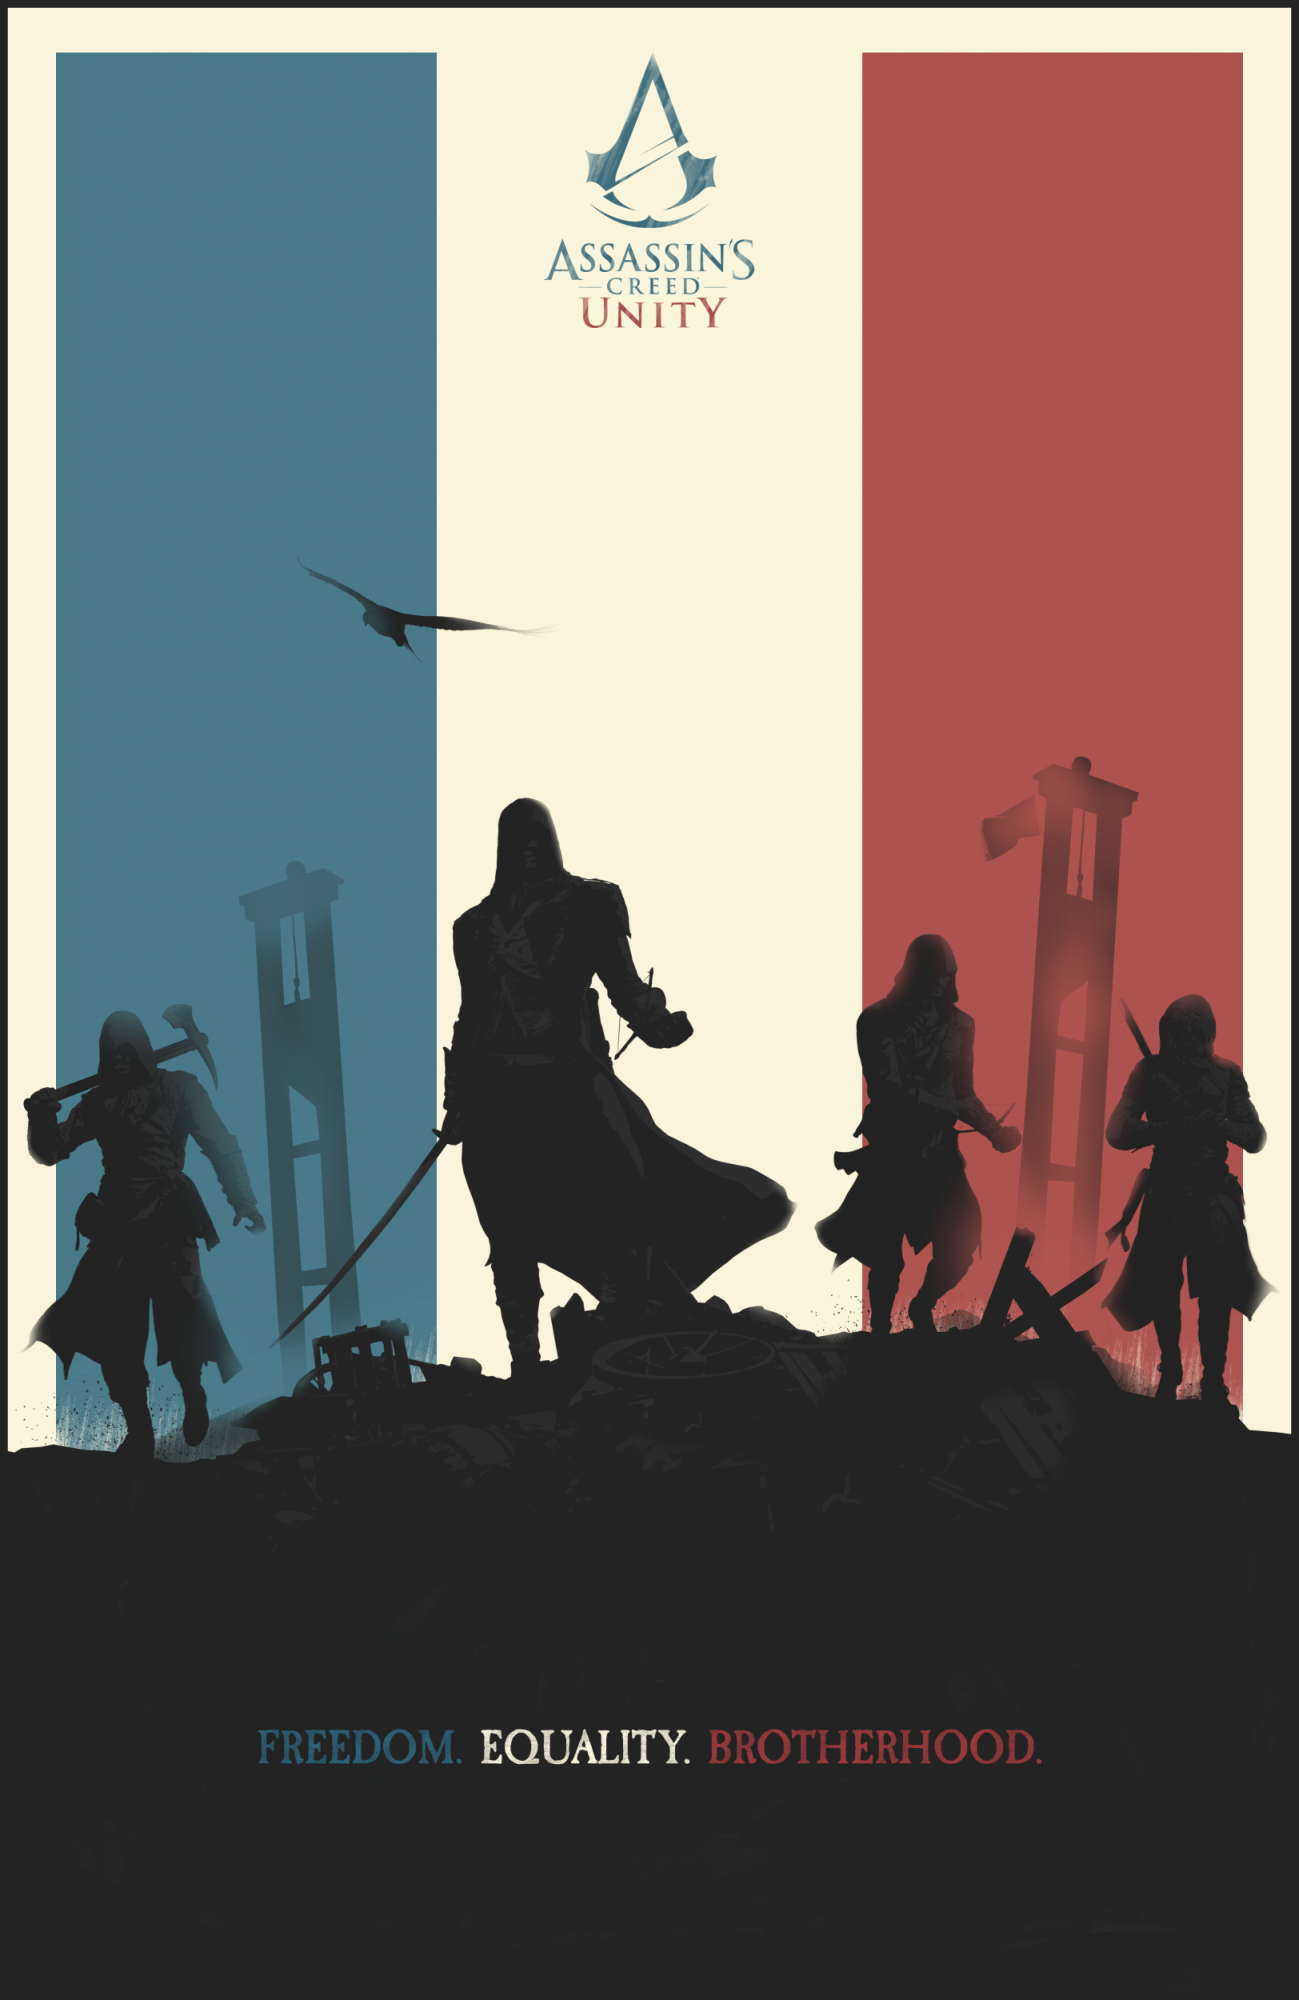 Cover clipart assassin's creed unity Unity Creed Entries Unity [Competition